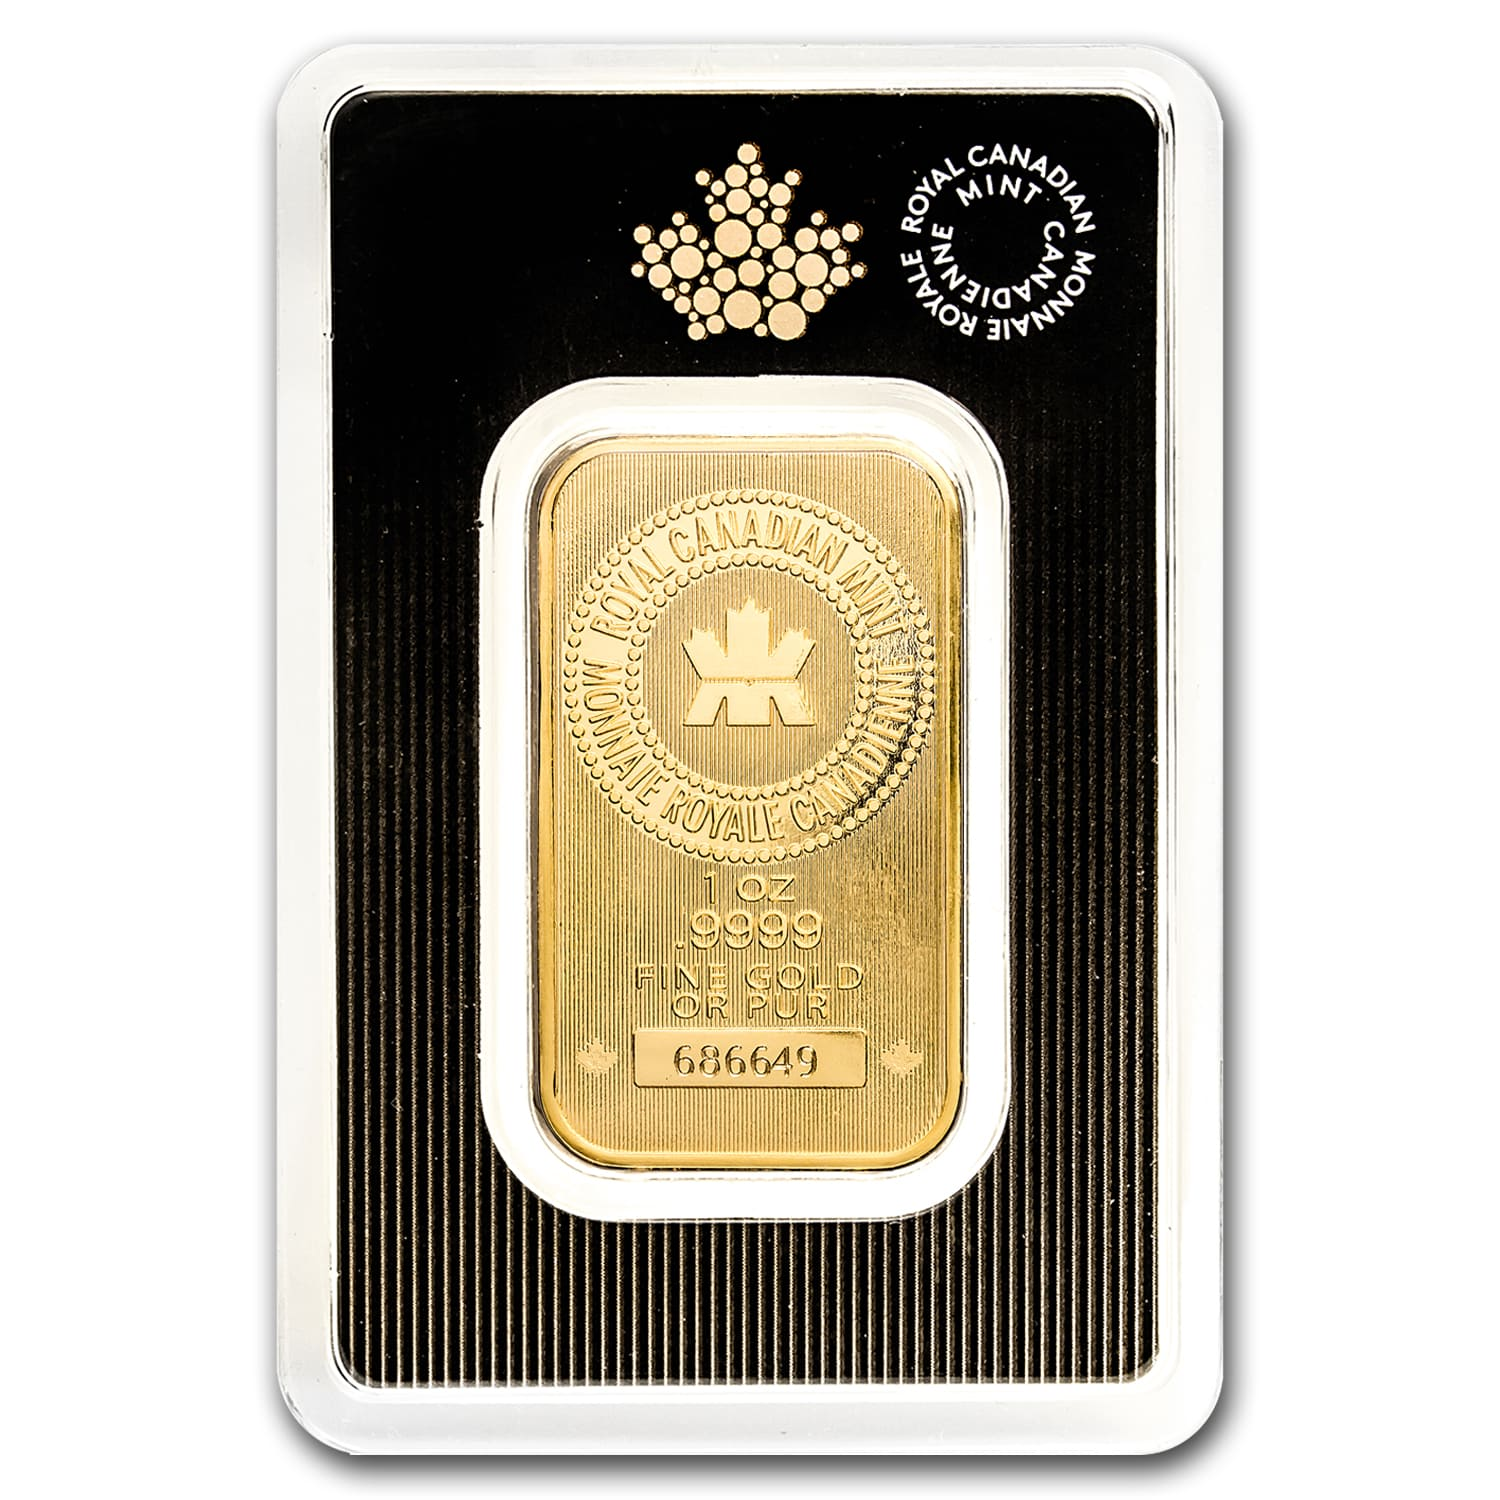 1 Oz Gold Bar New Royal Canadian Mint In Assay Royal